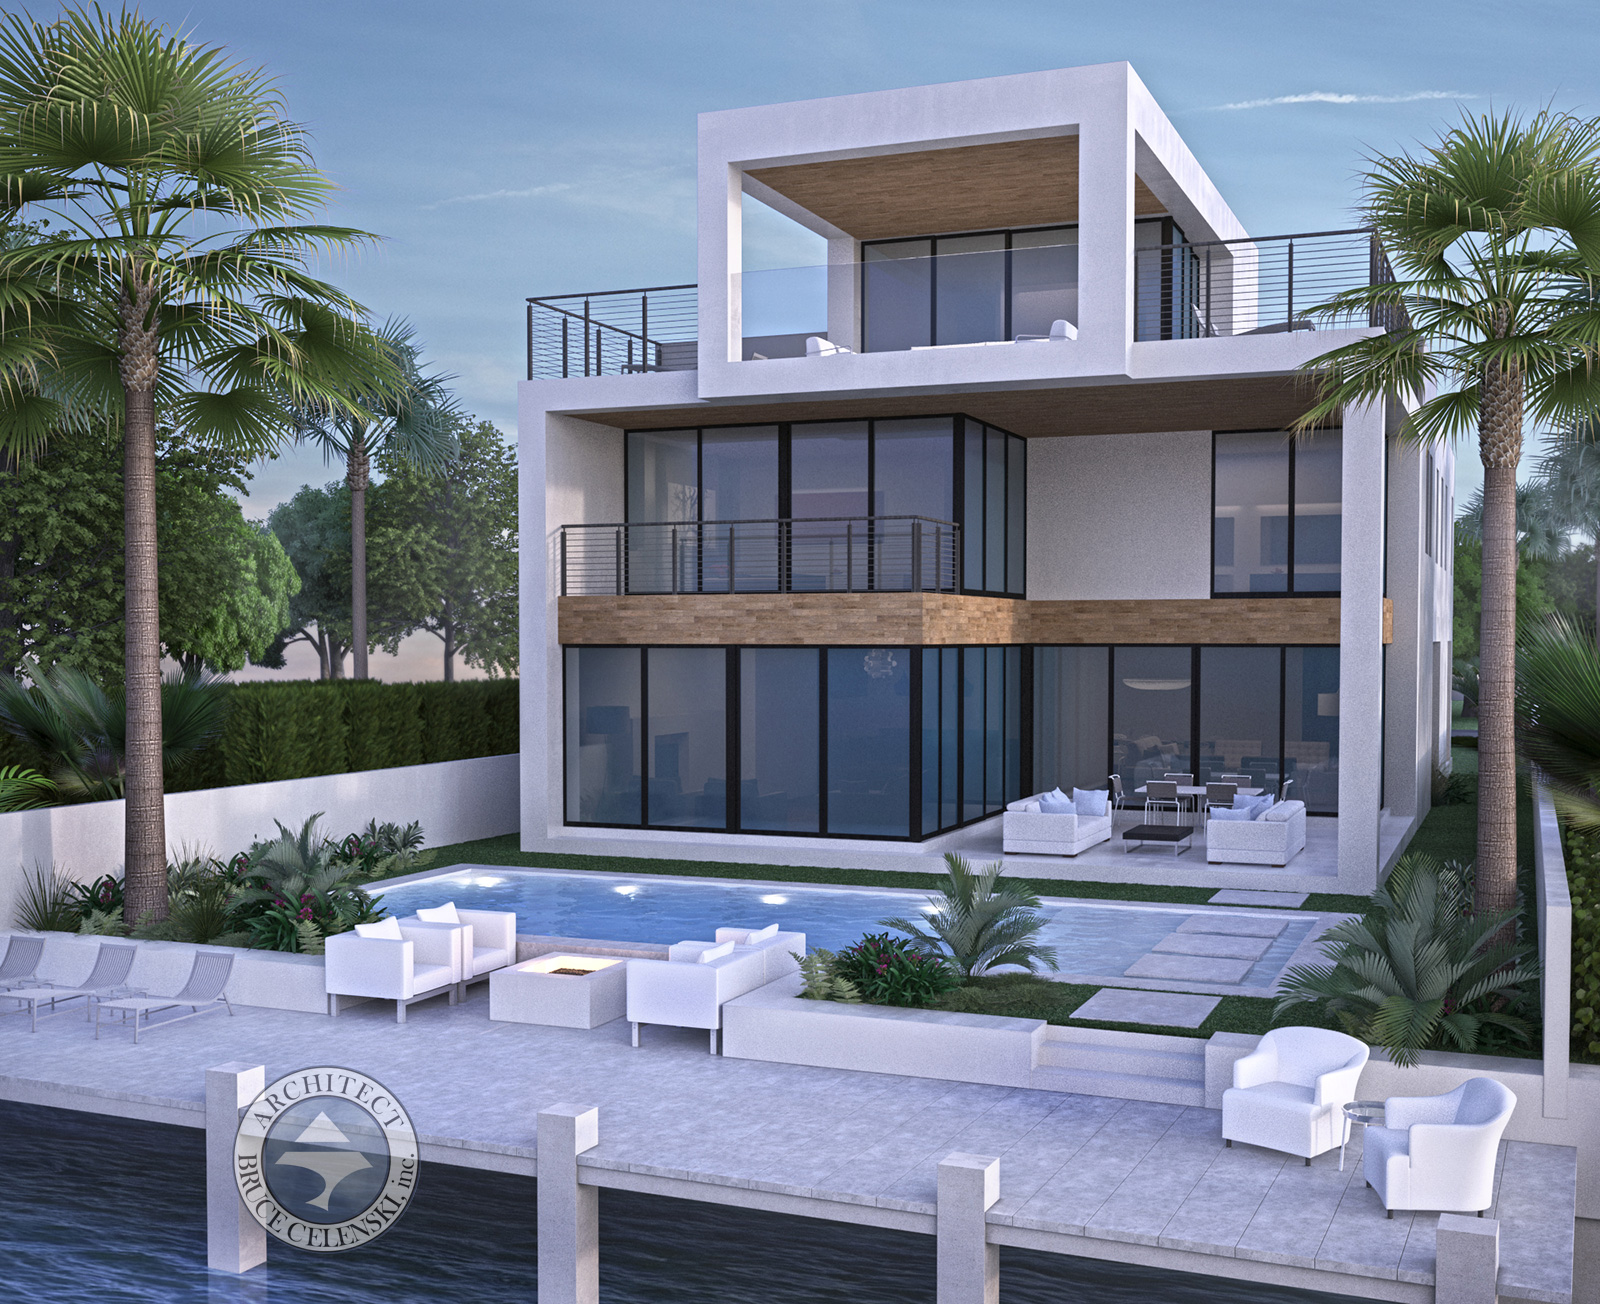 Fort Lauderdale architect luxury waterfront home rear view photo